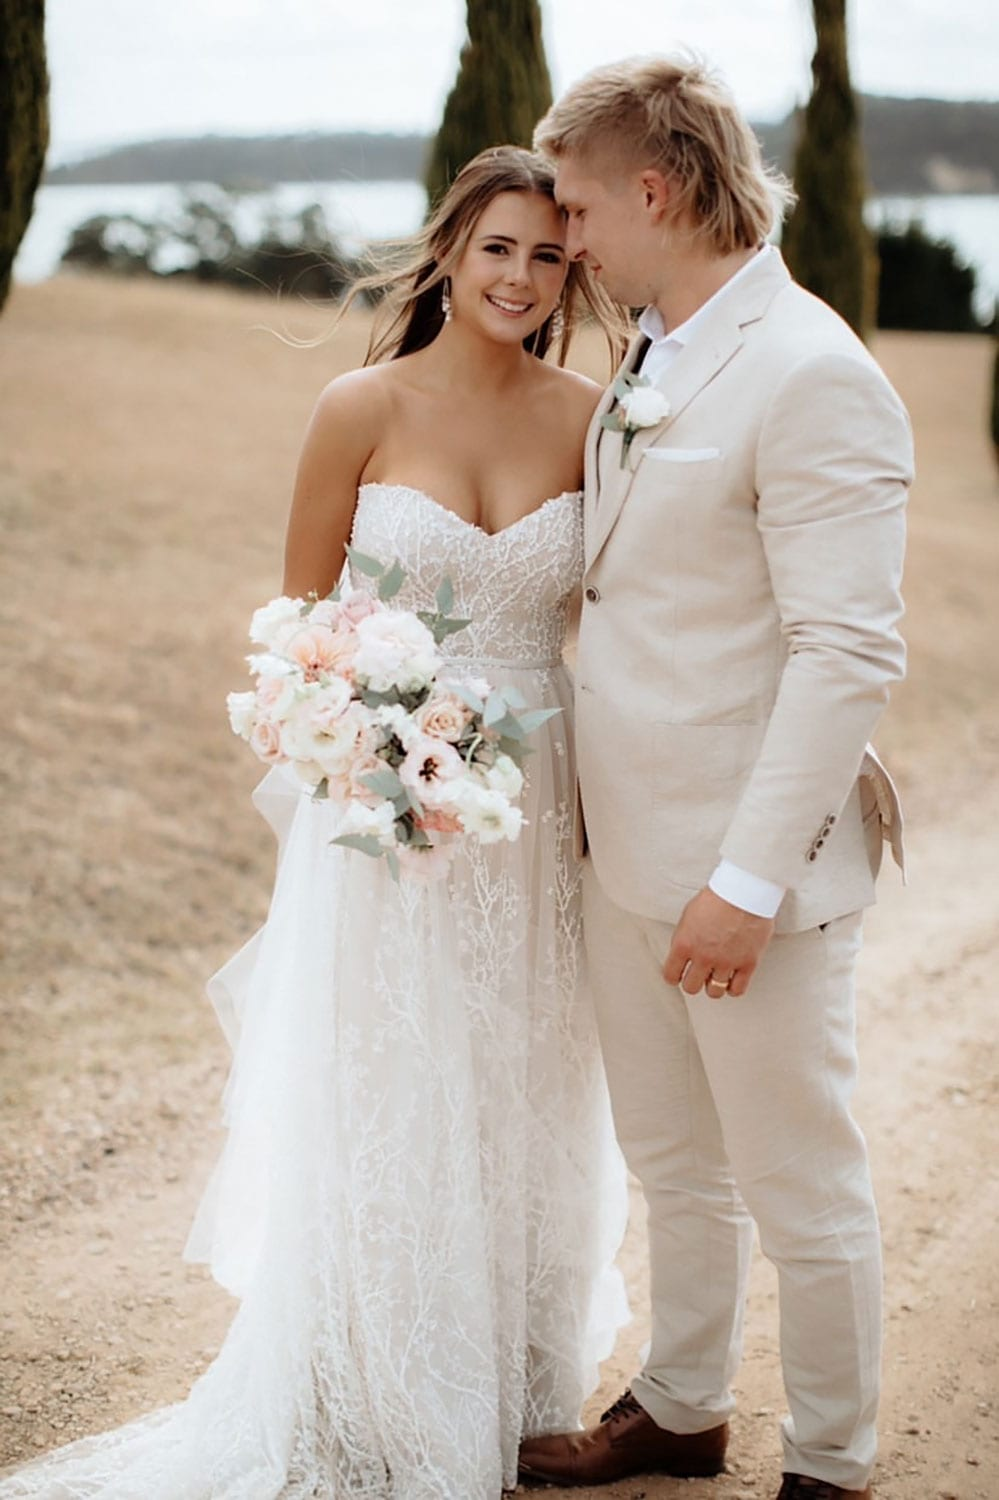 Vinka Design Features Real Weddings - bride wearing custom made strapless beaded lace dress. Bride and groom pose outdoors